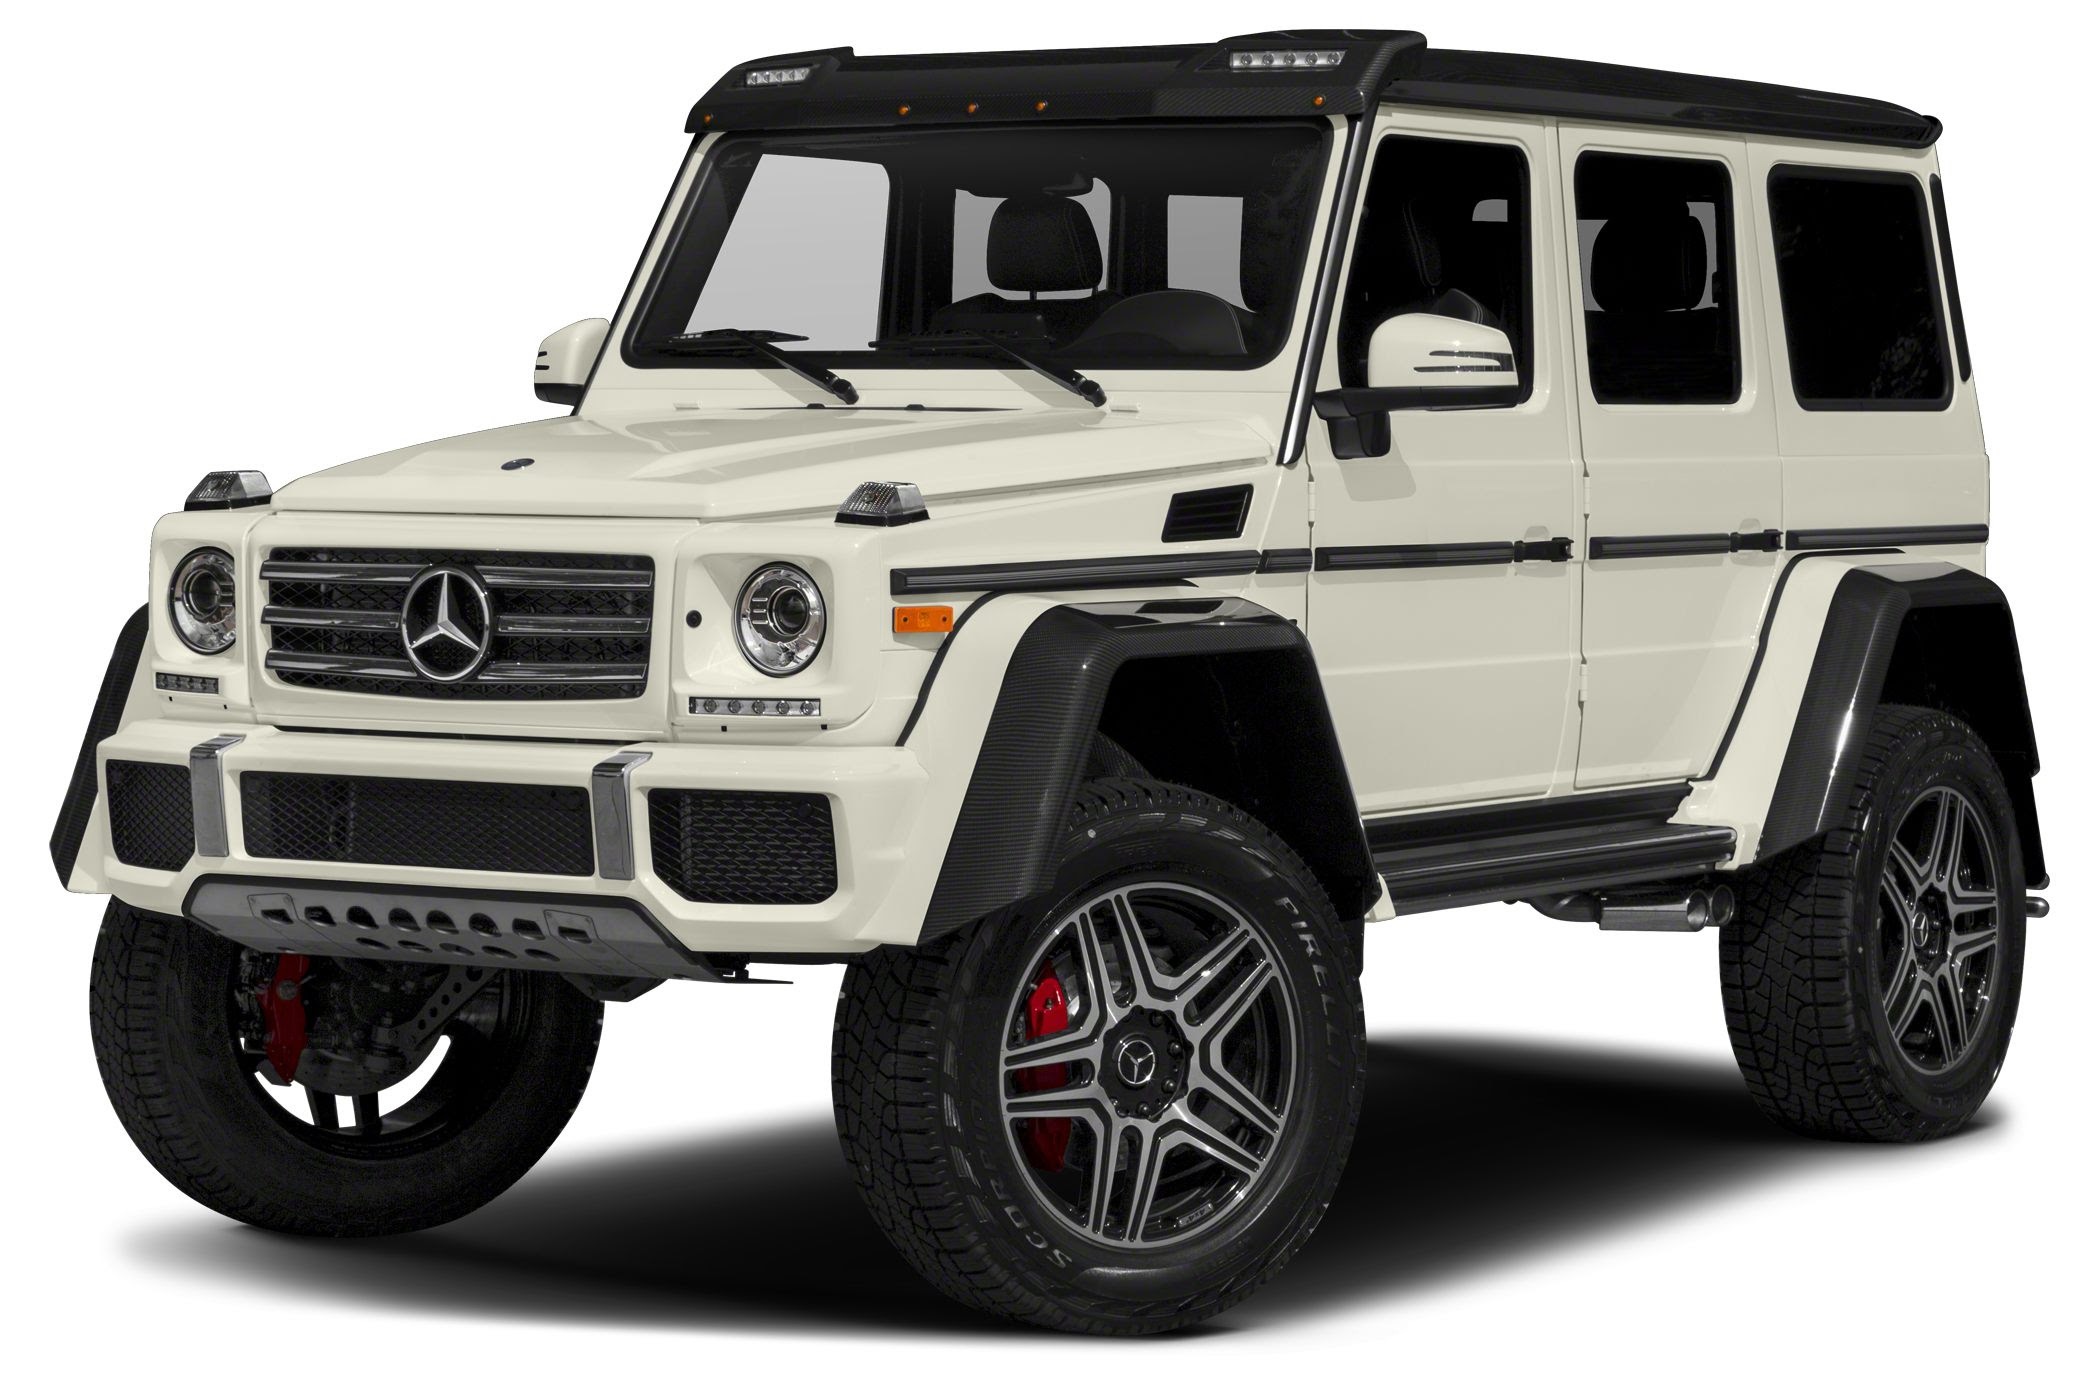 Mercedes-Benz G550 4x4 Squared News, Photos and Buying ...